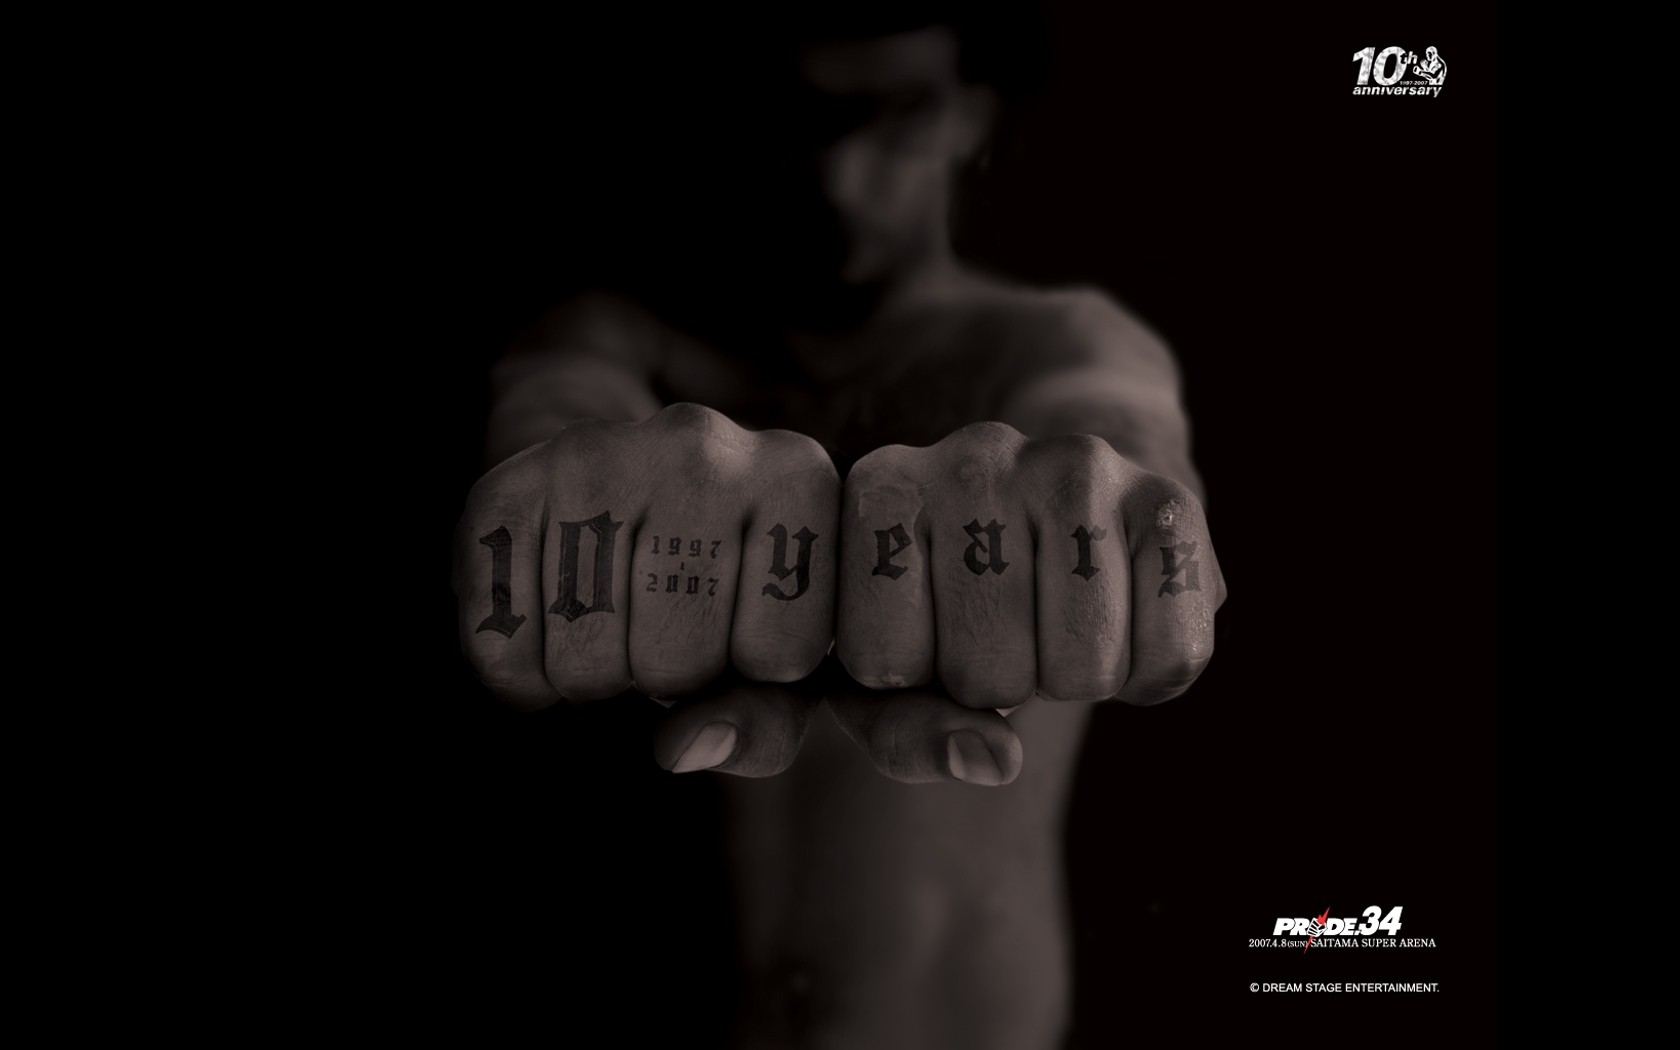 MMA UFC Wallpaper 1680x1050 MMA UFC PRIDE Fighting Championship 1680x1050